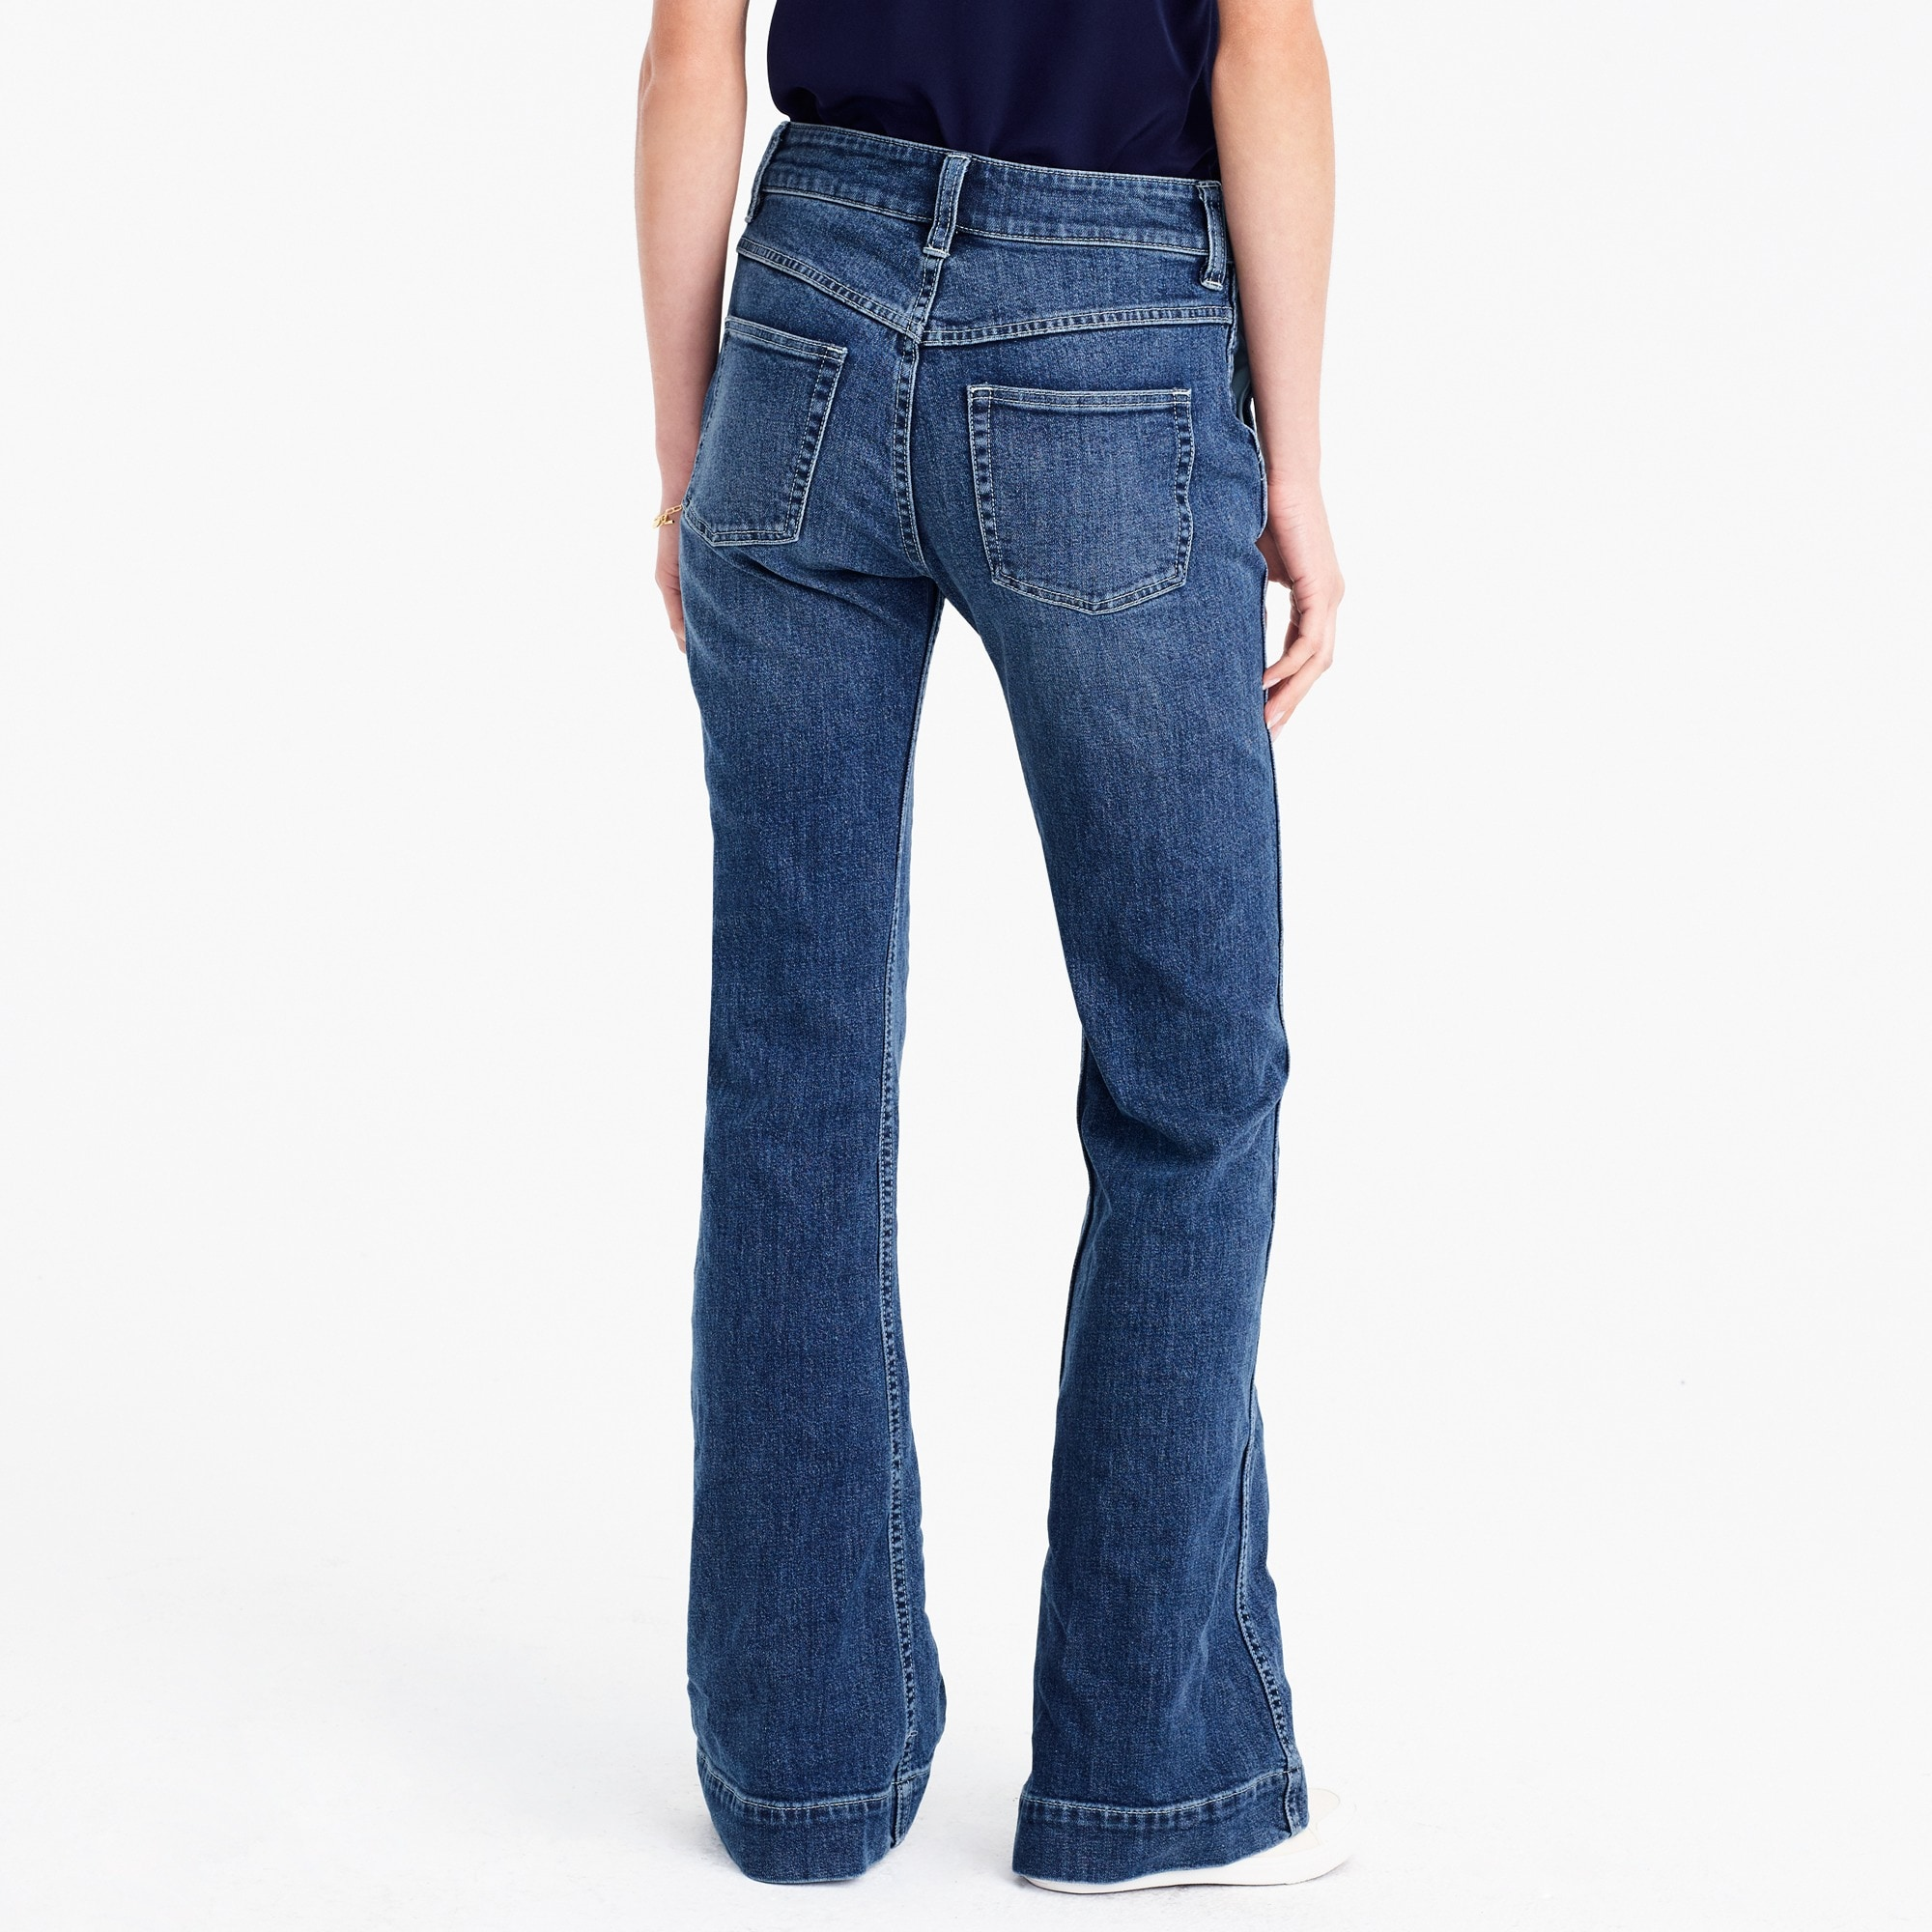 Wide-leg trouser jean in Tahoe wash